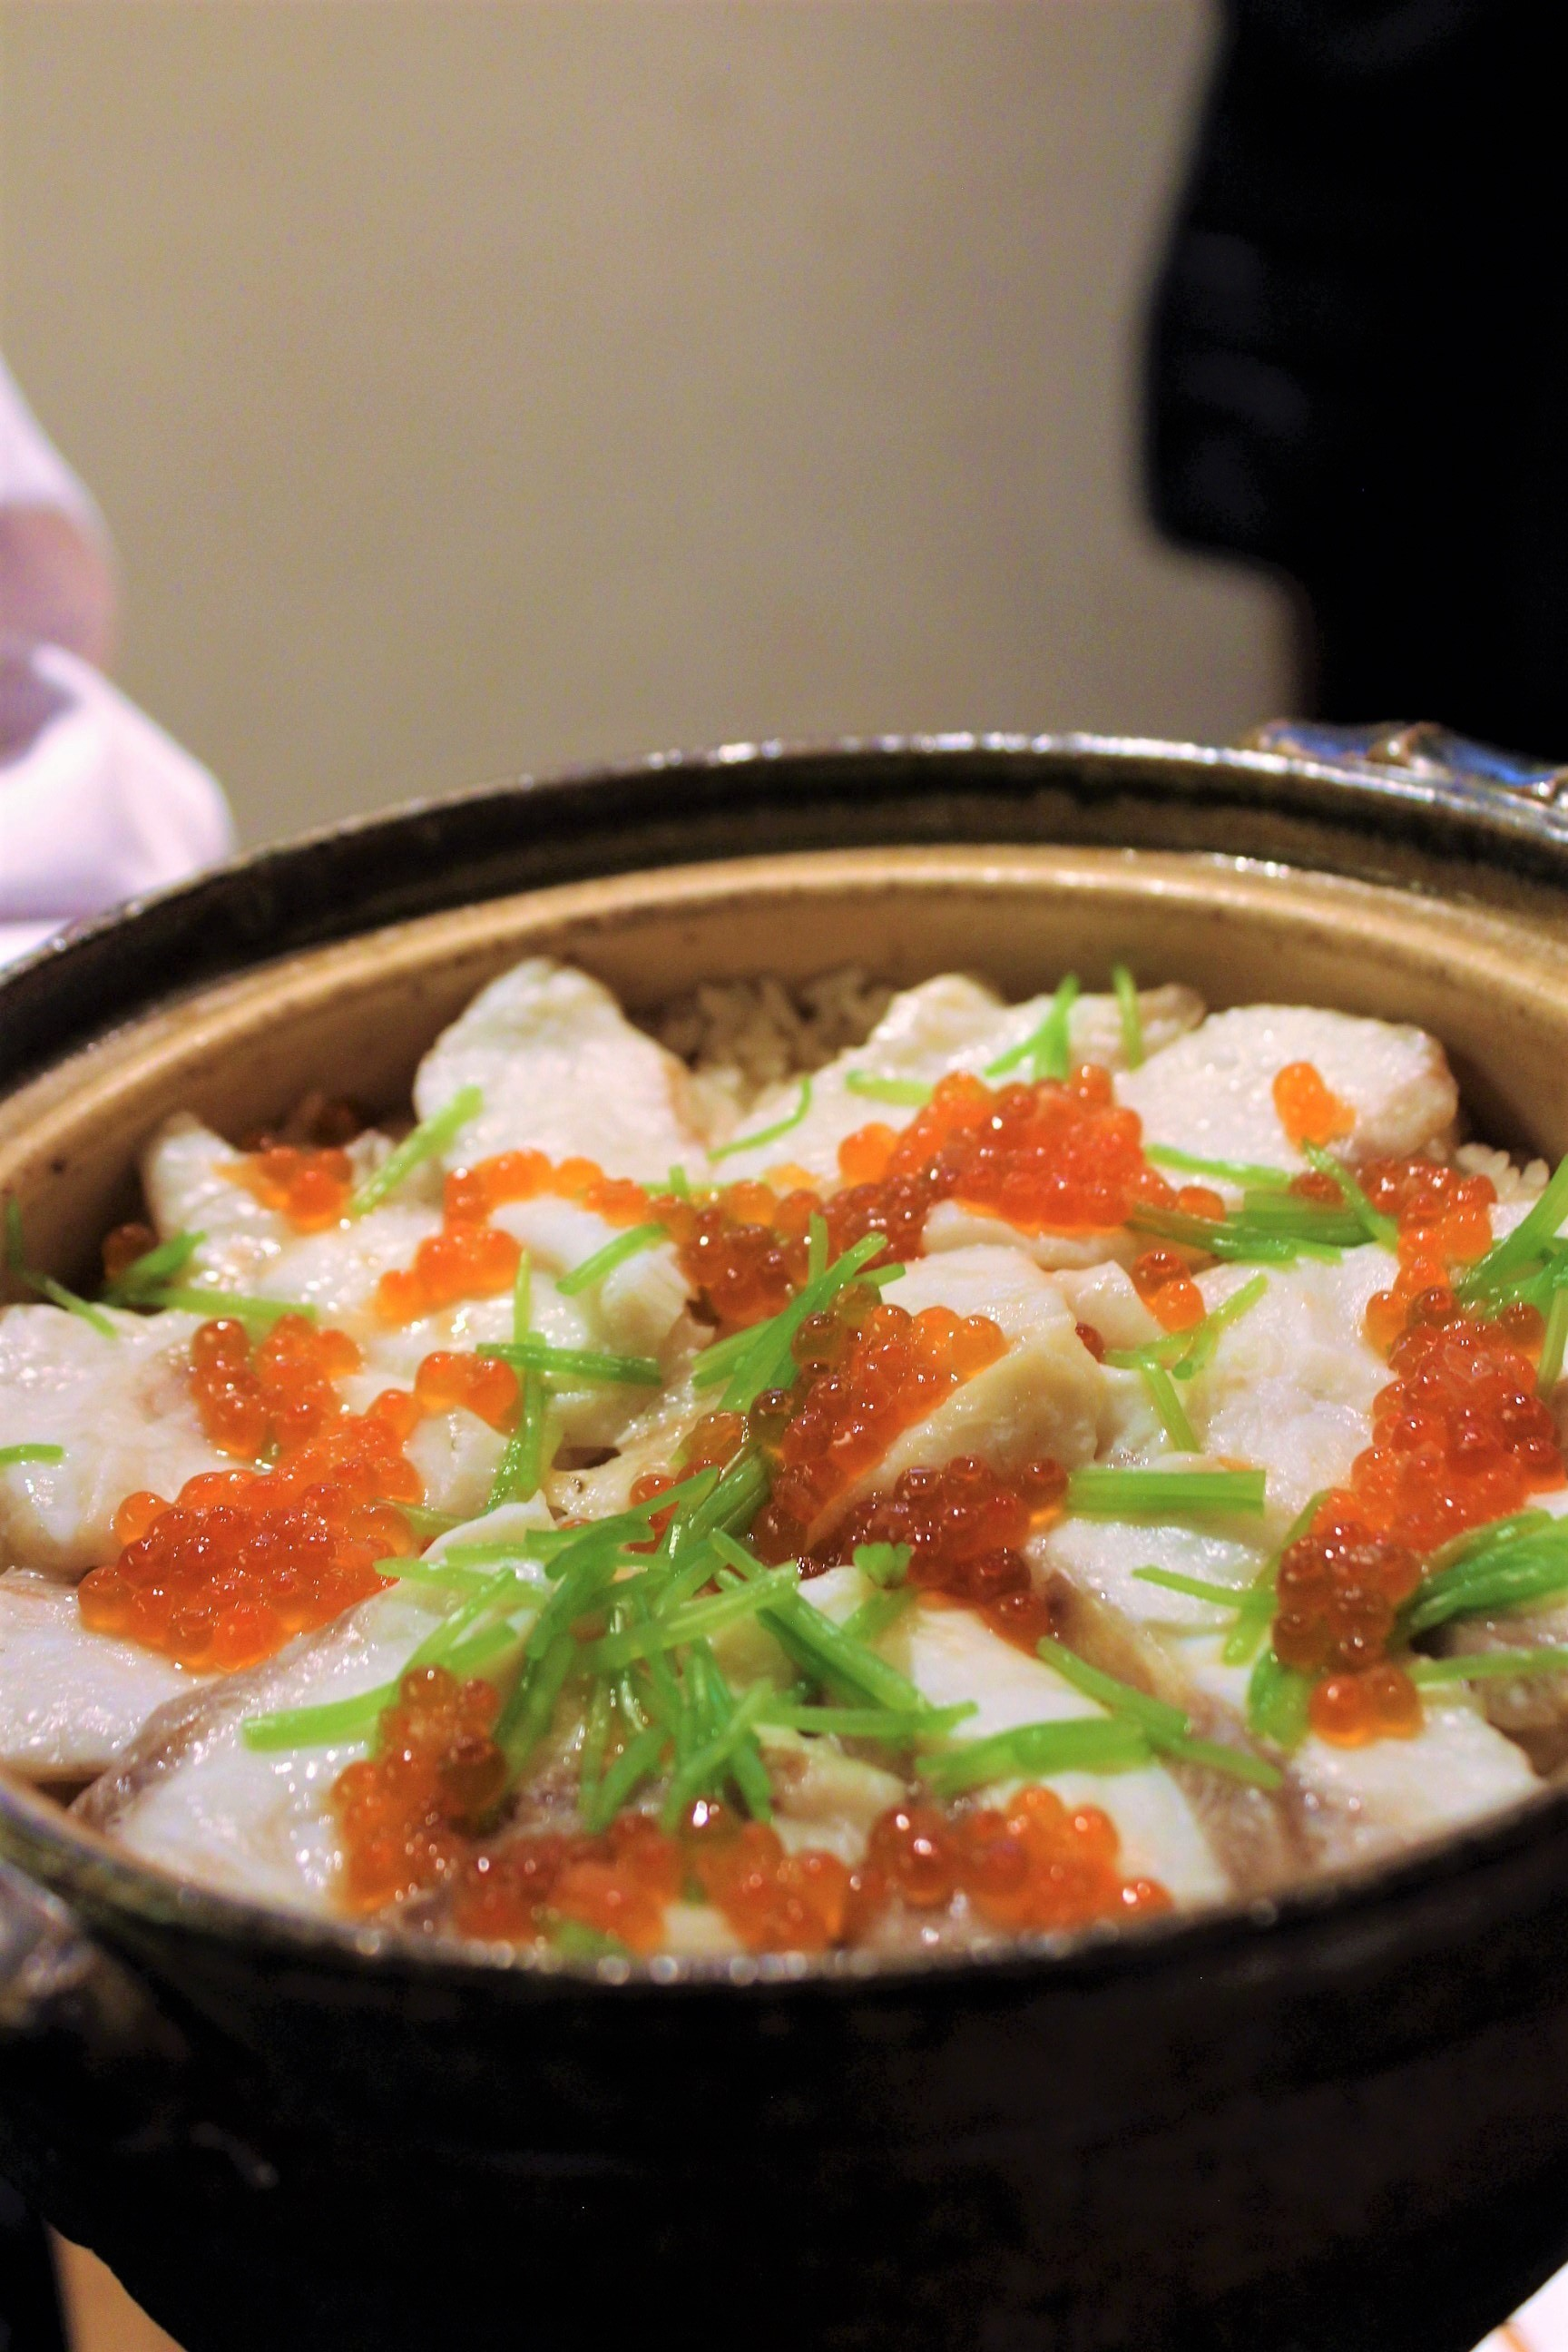 Red Snapper with Salmon Roe over Rice at Kien in Tokyo, Japan